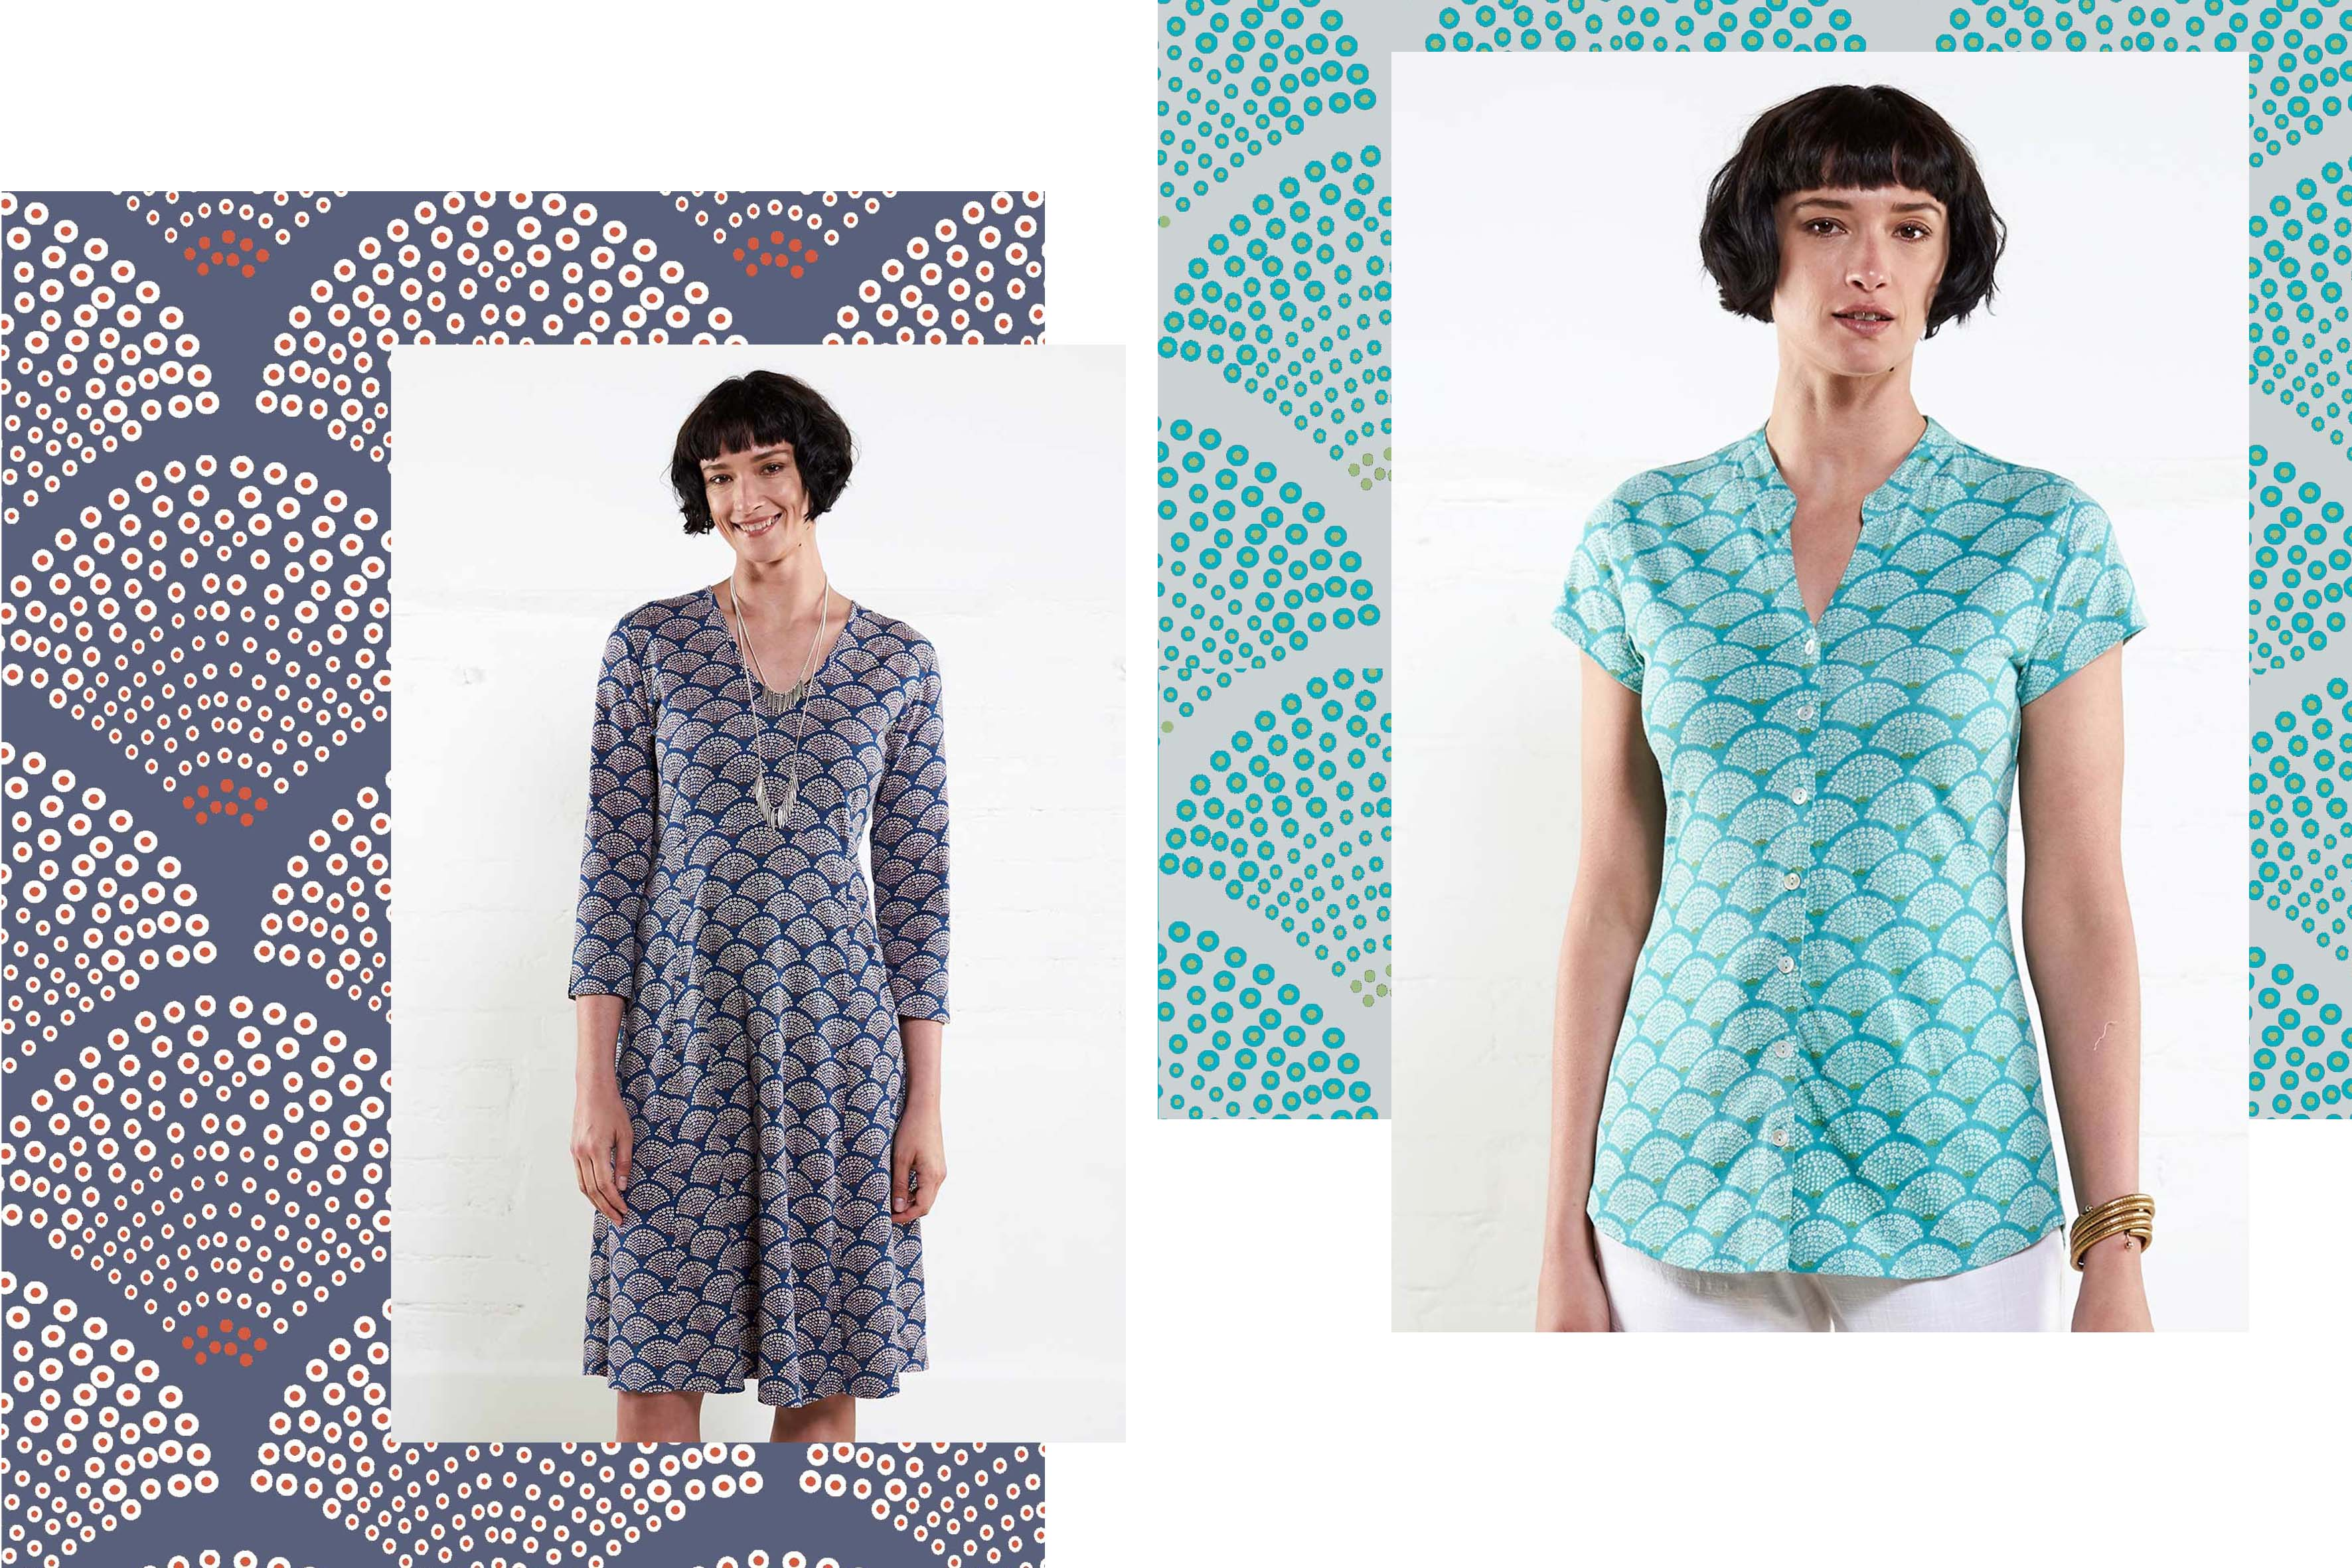 fan print textile design in 2 colourways with image of dress and top